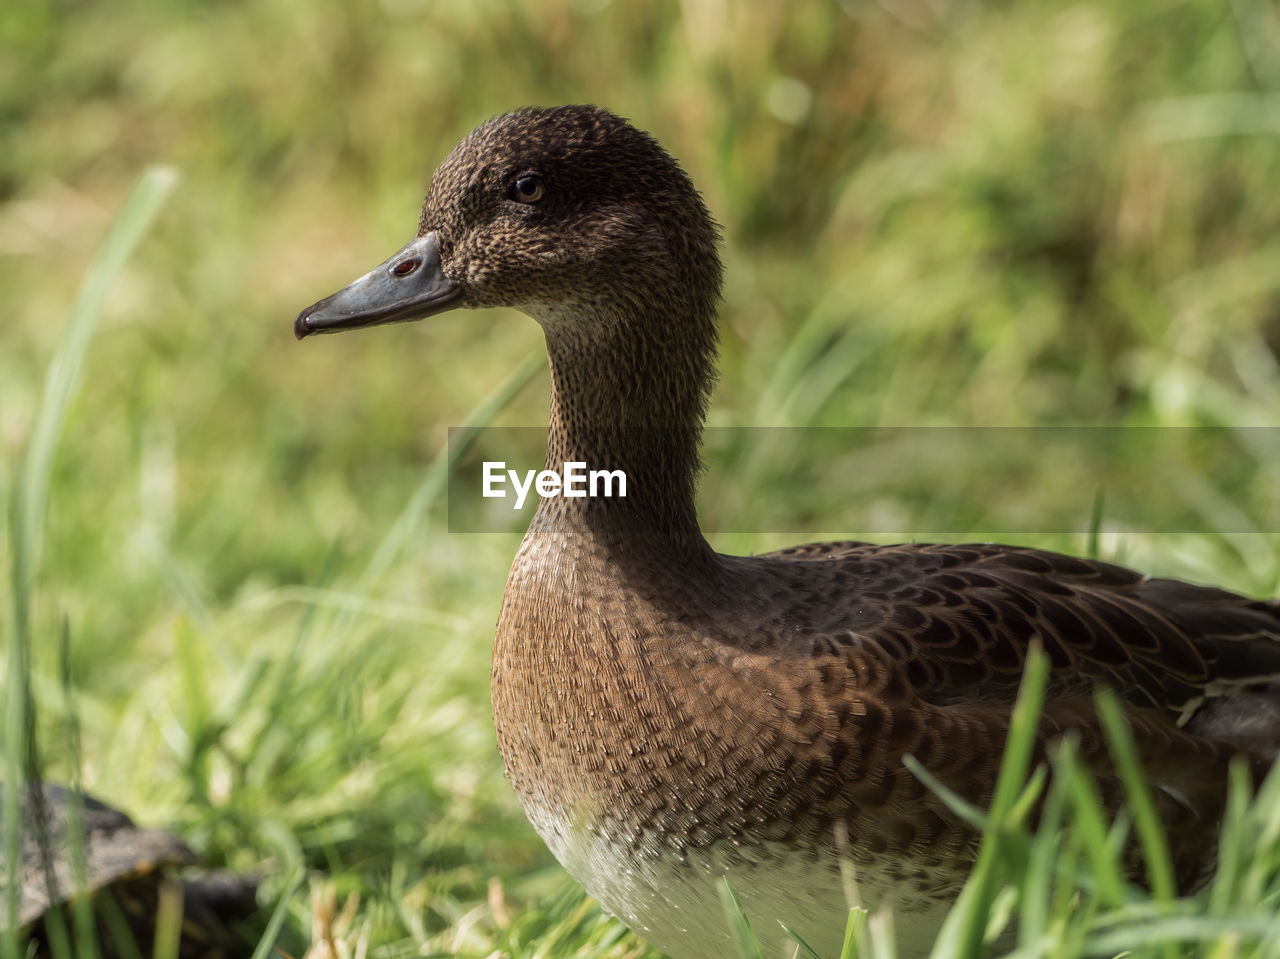 animal wildlife, animals in the wild, one animal, animal themes, vertebrate, animal, bird, nature, focus on foreground, plant, day, close-up, no people, grass, field, land, water bird, duck, looking, goose, outdoors, beak, animal head